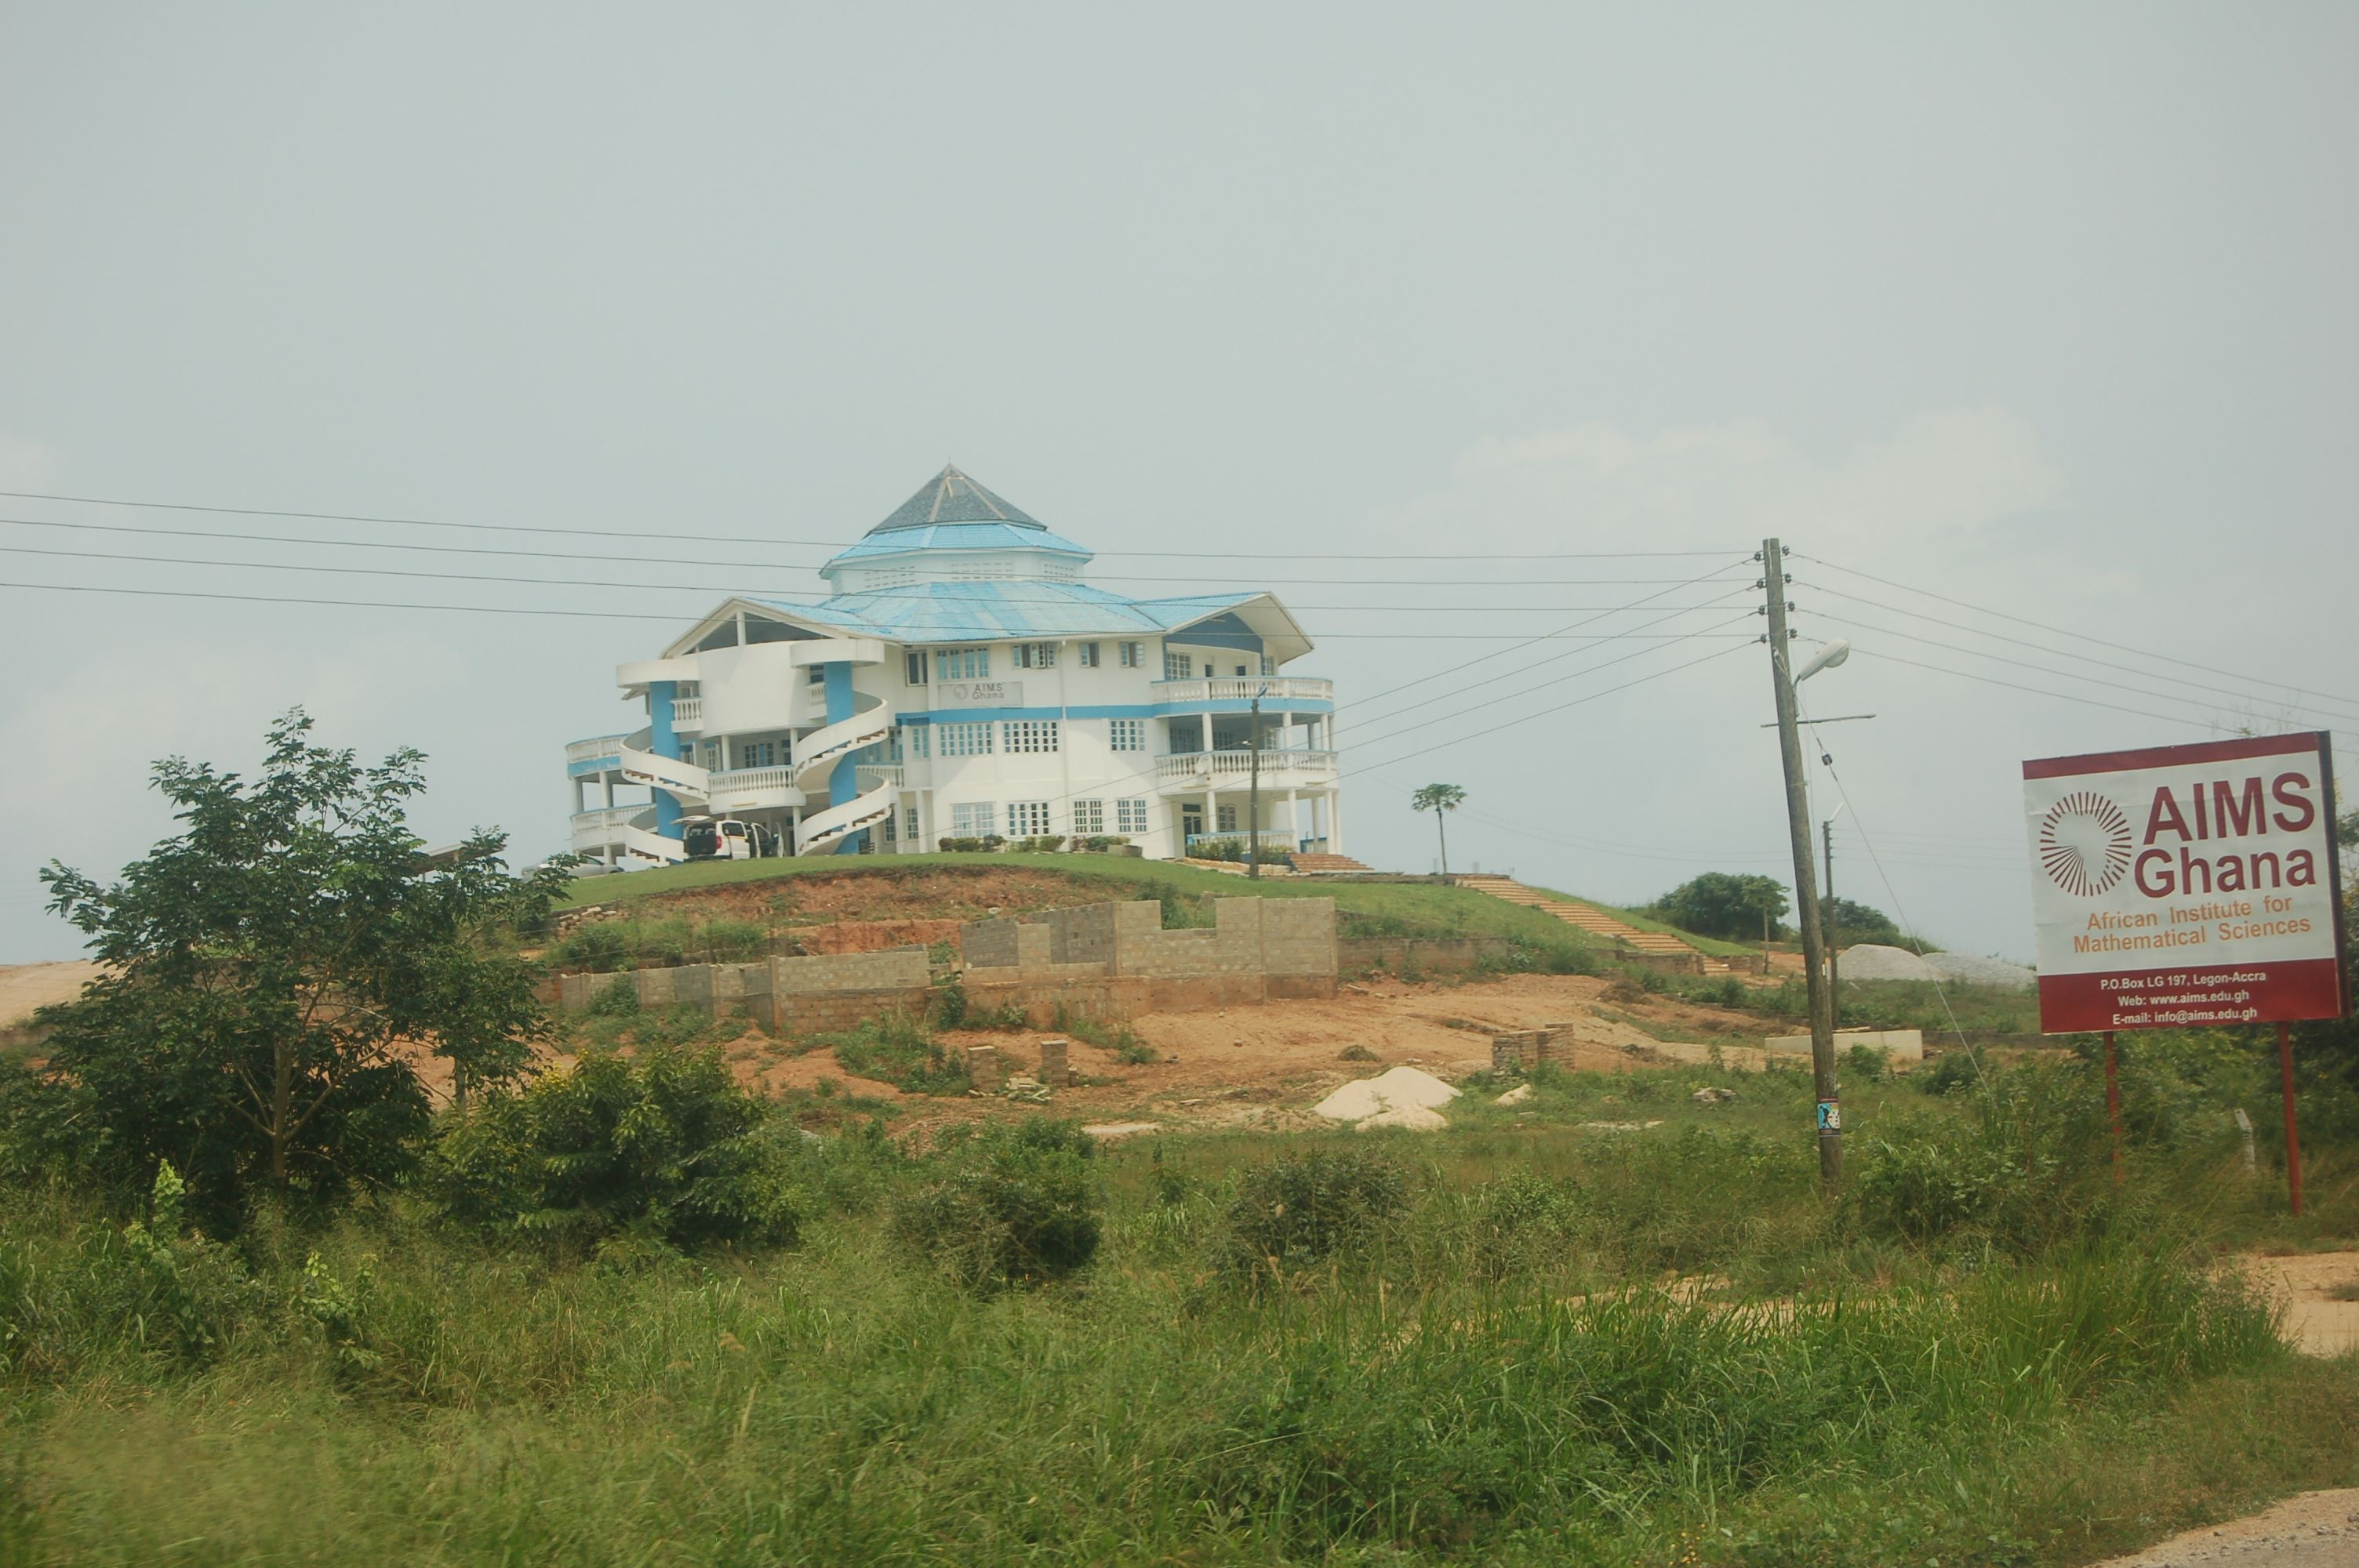 Number theory the african queen phd epsilon aims ghana you cant see from here but the institute sits on a hill overlooking a dramatic coastline best beach resort ever with great ocean views and publicscrutiny Images